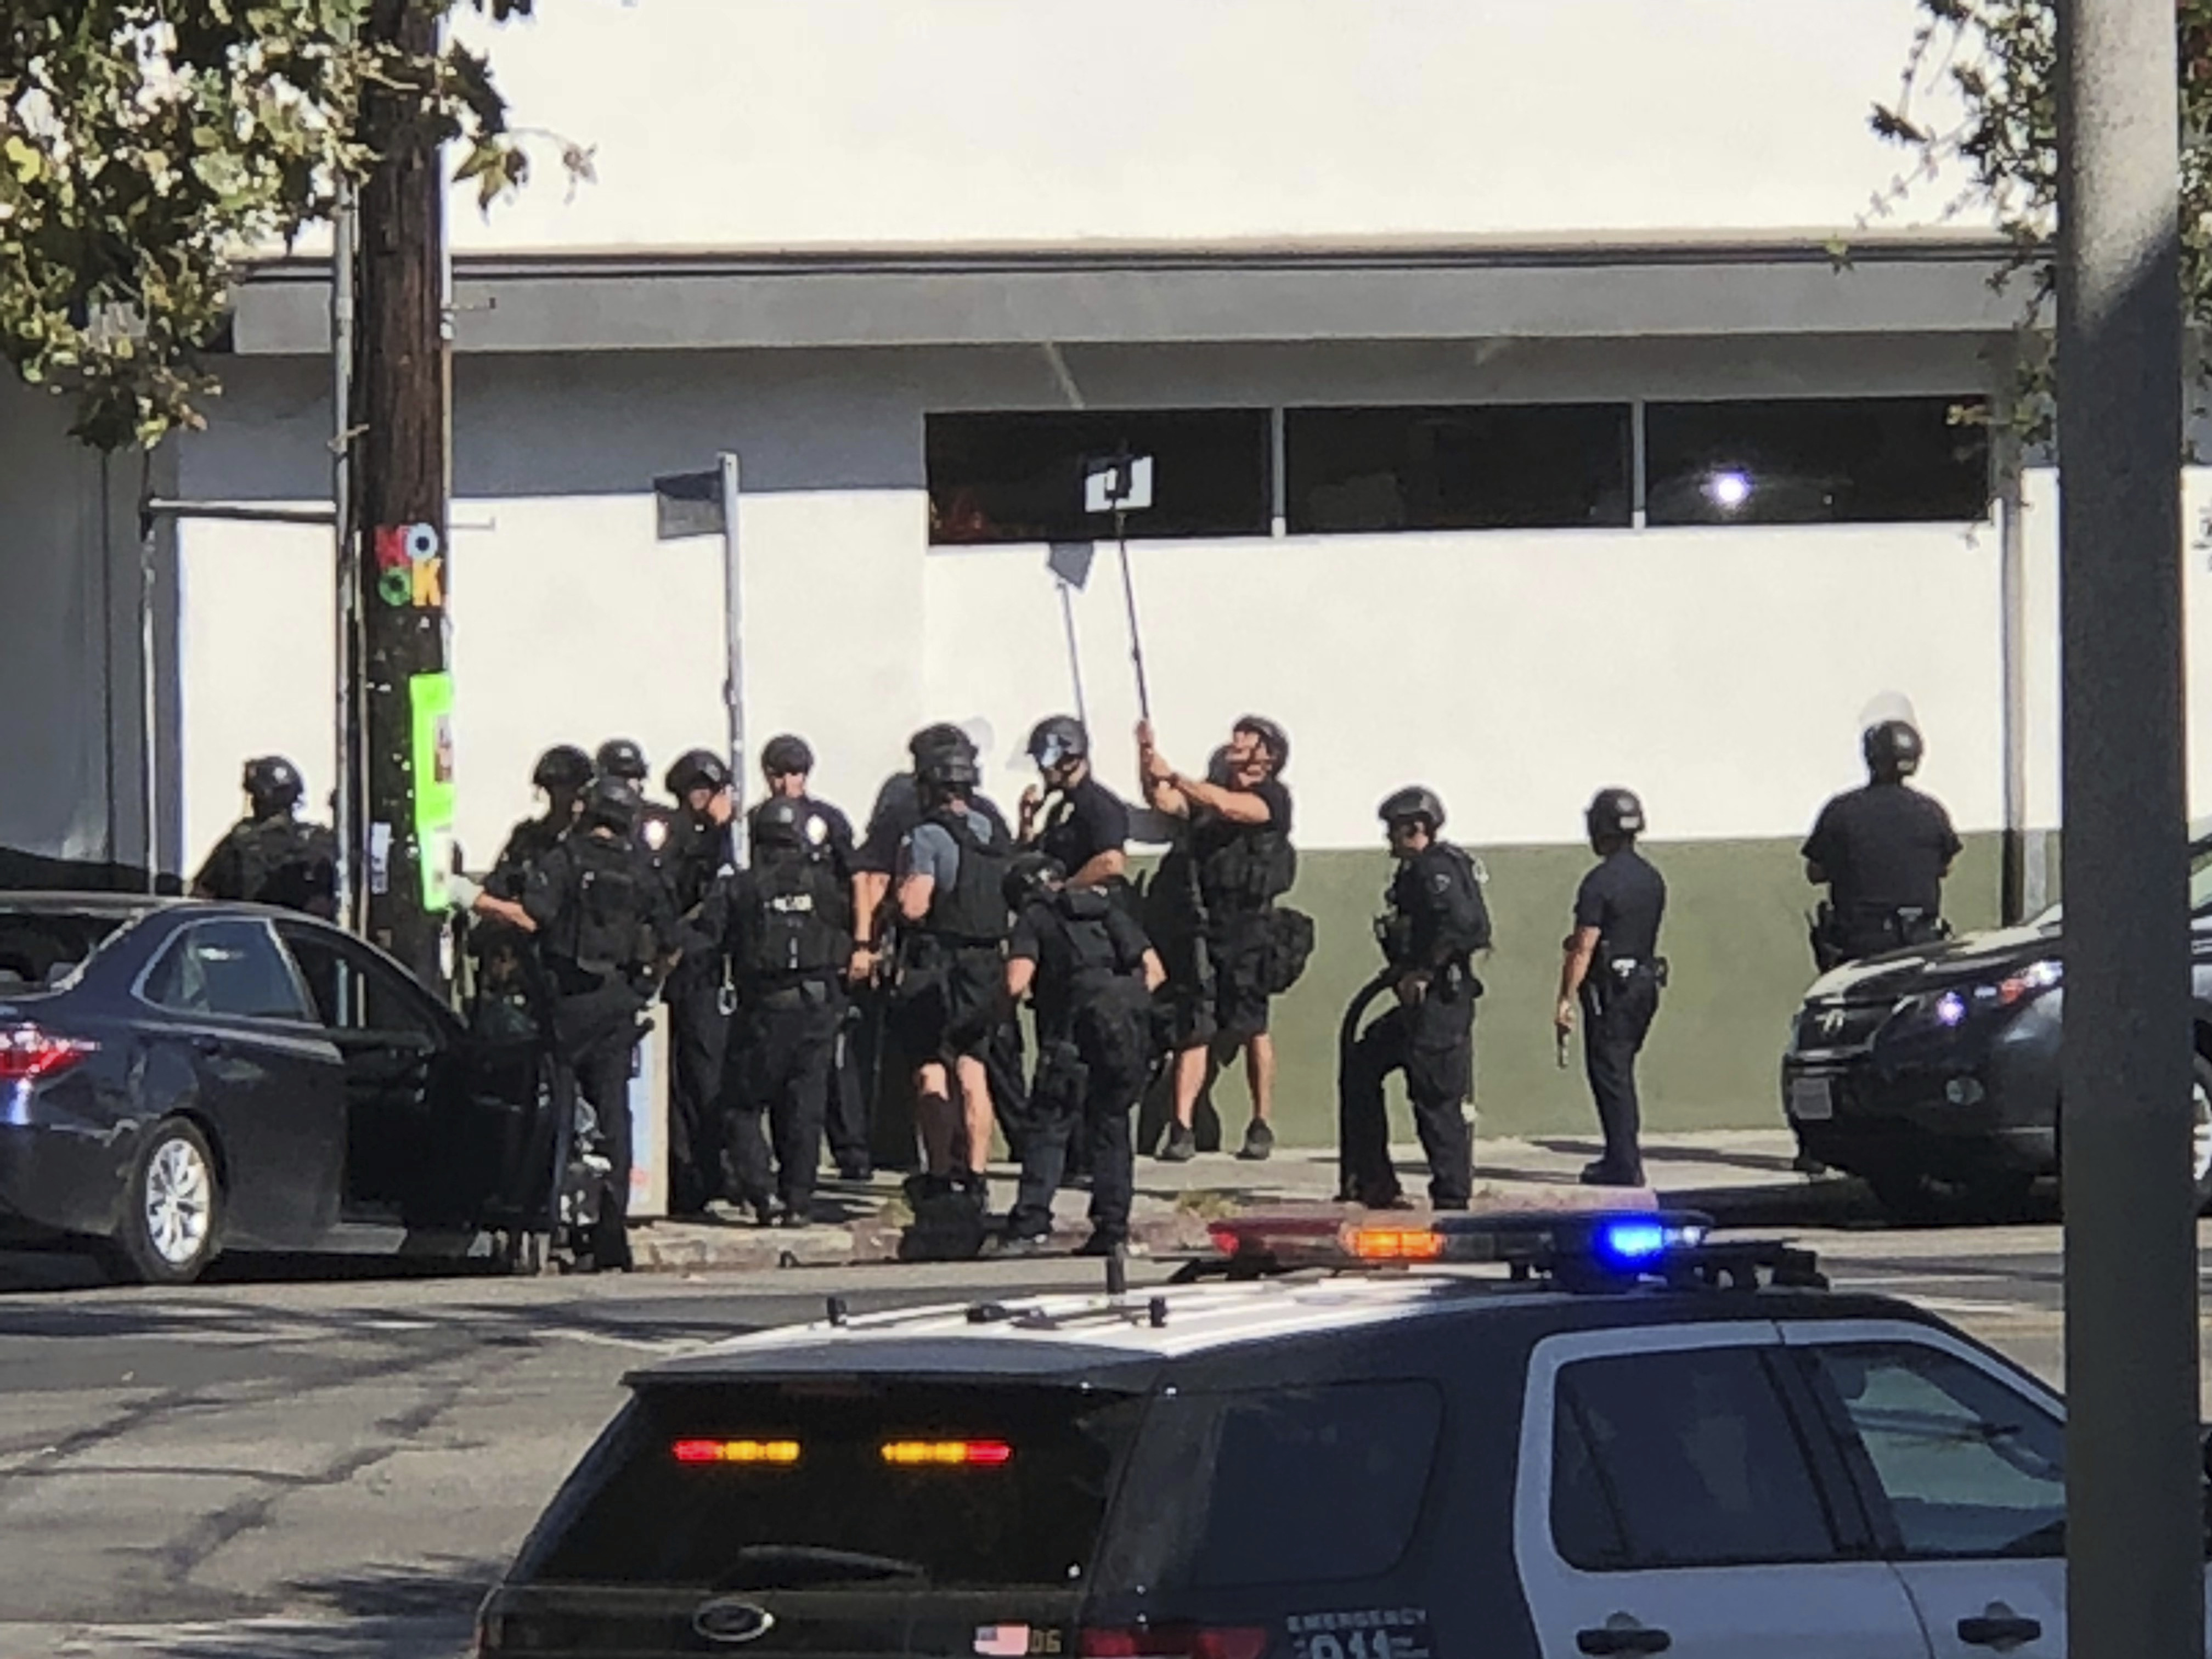 Armed standoff at Los Angeles Trader Joe's: 1 dead